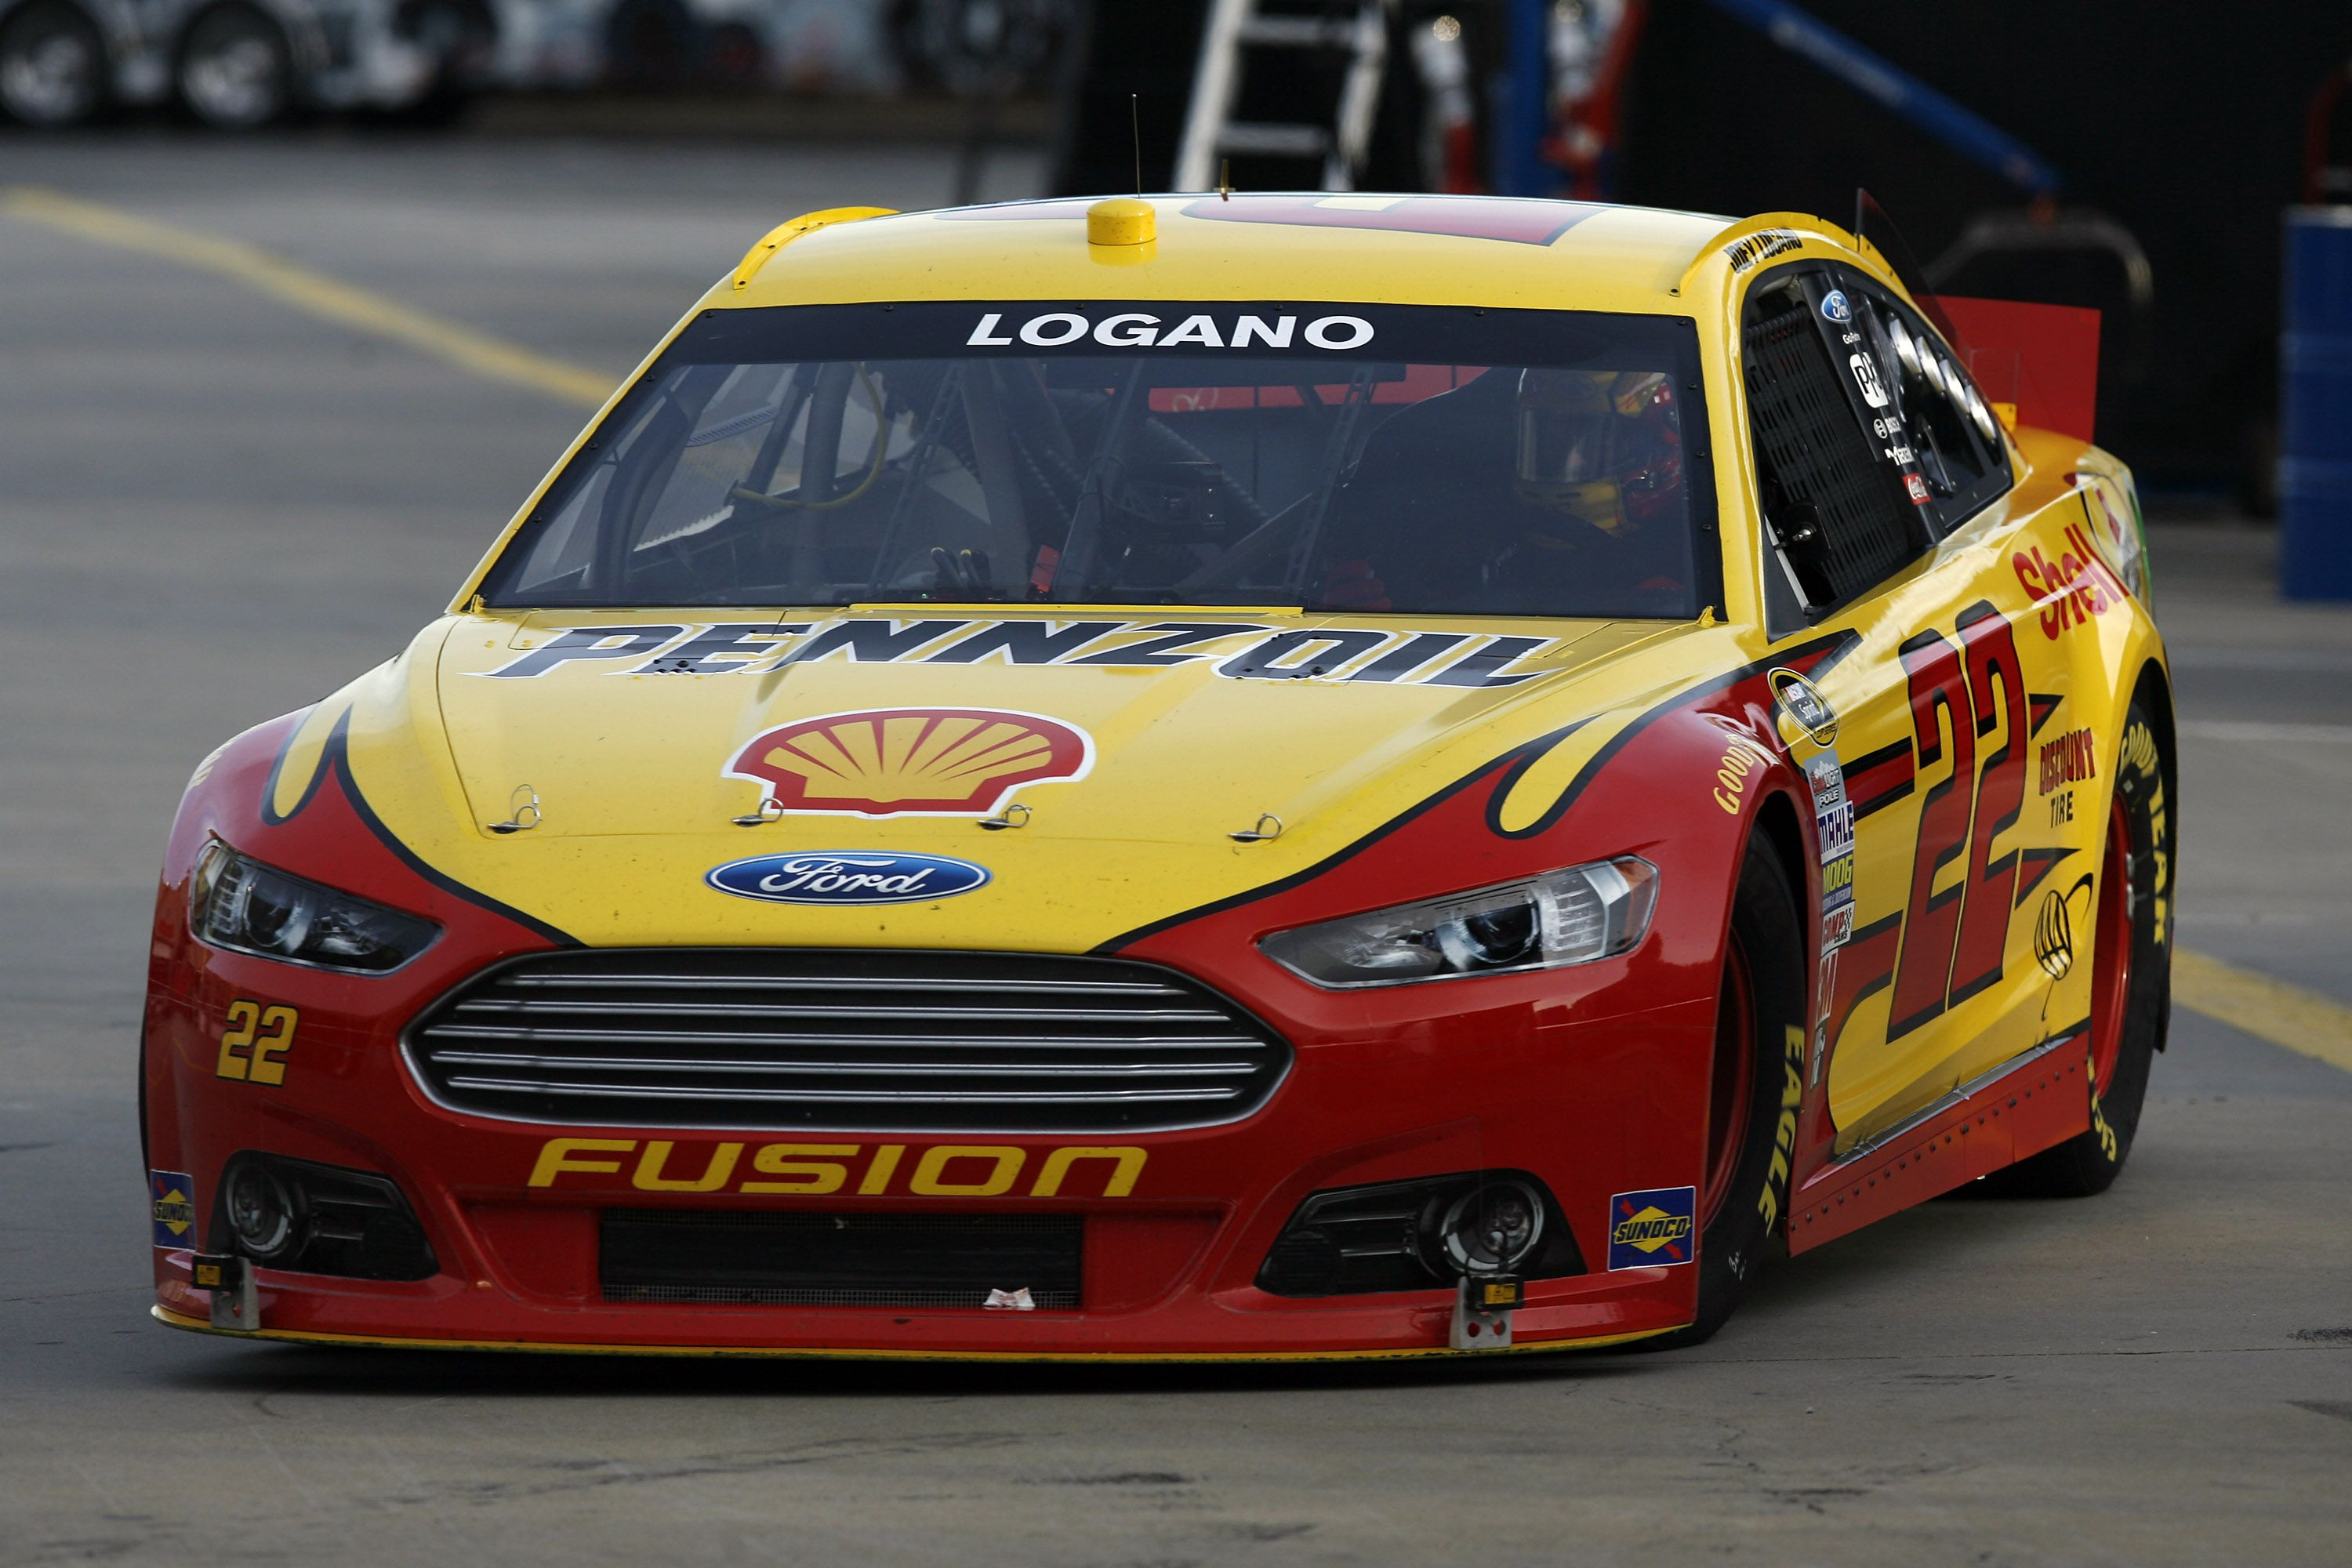 22 joey logano shell pennzoil ford fusion